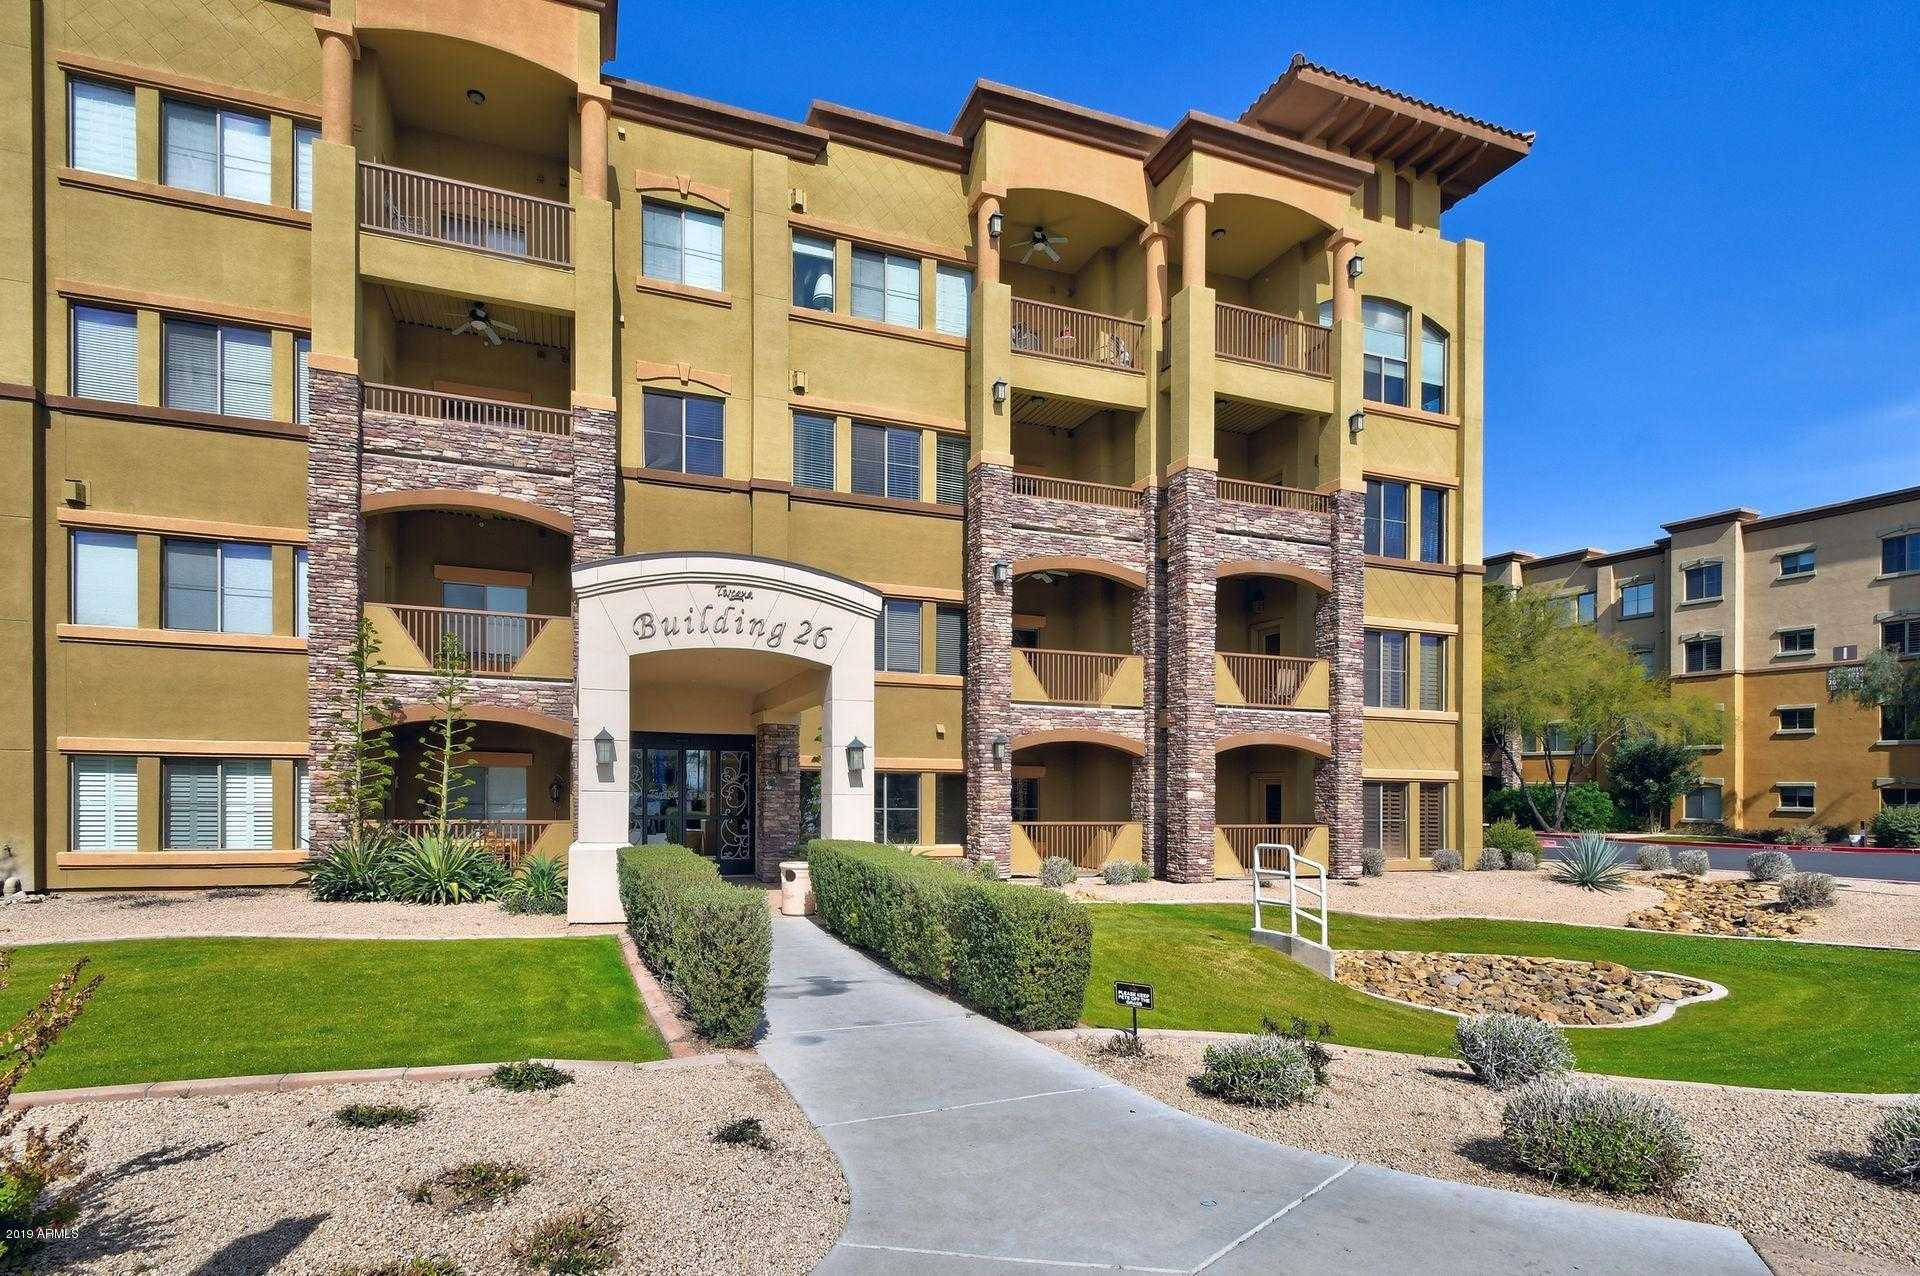 $195,000 - 1Br/1Ba -  for Sale in Toscana At Desert Ridge Condominium 2nd Amd, Phoenix